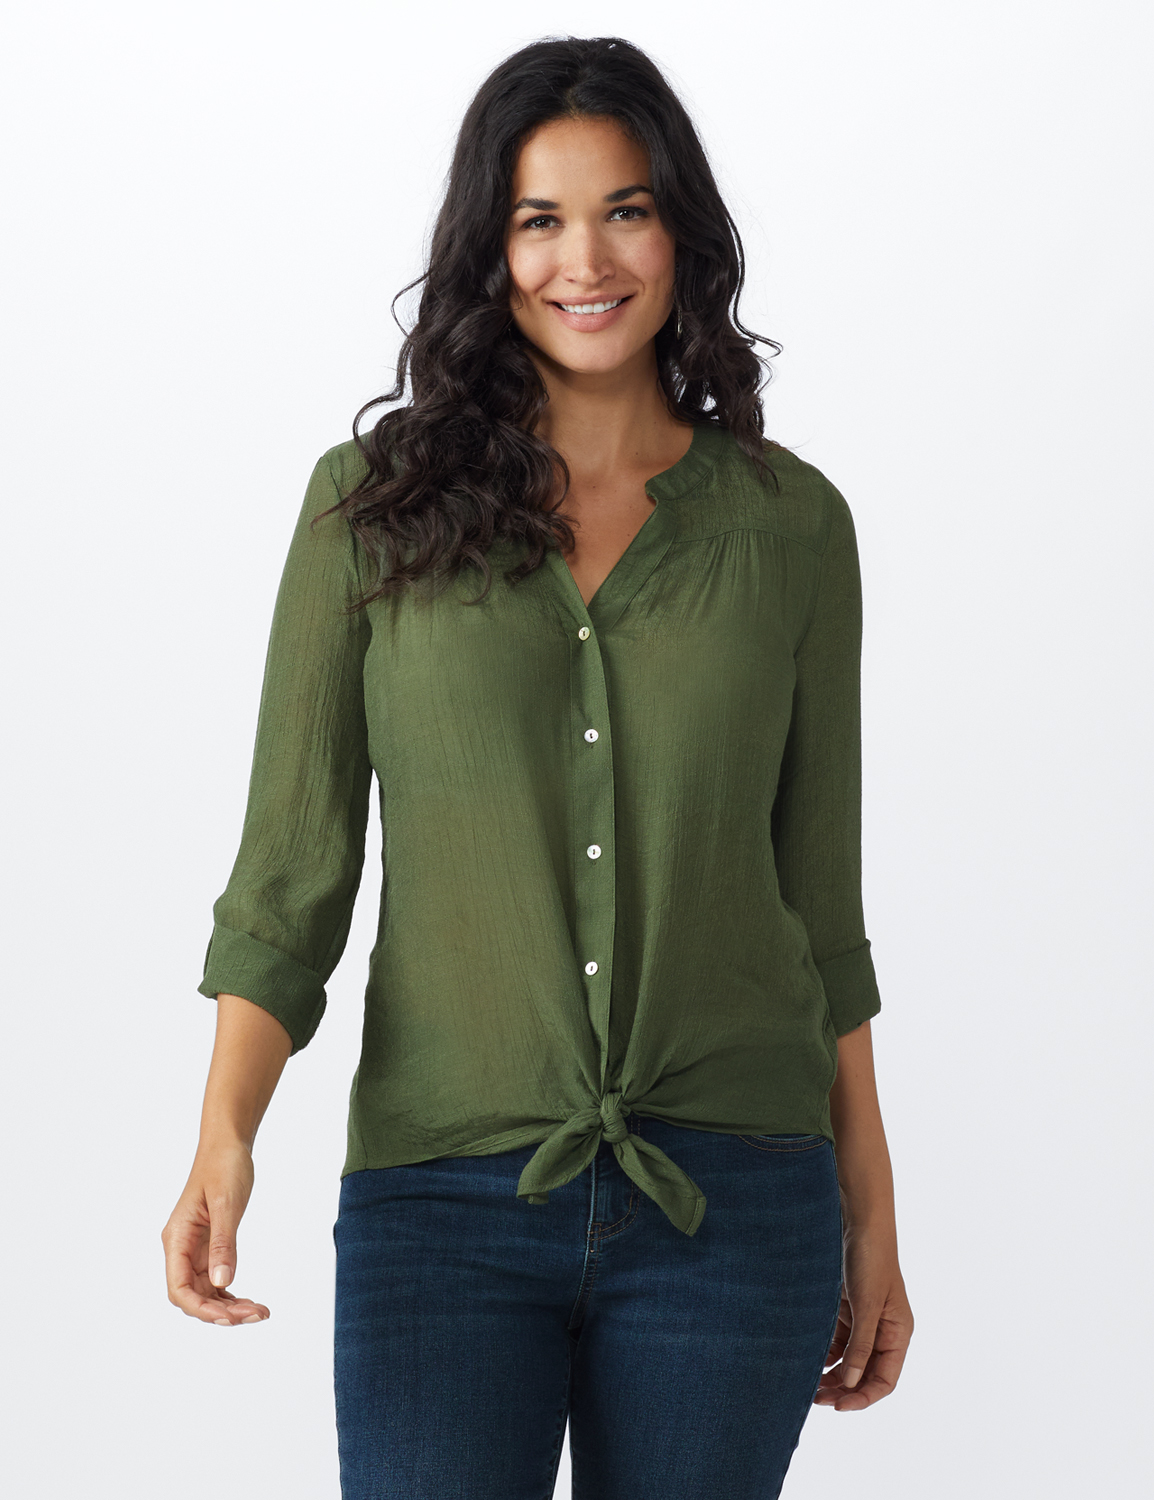 Textured Button Front Roll Tab Shirt - Misses -Army Olive - Front